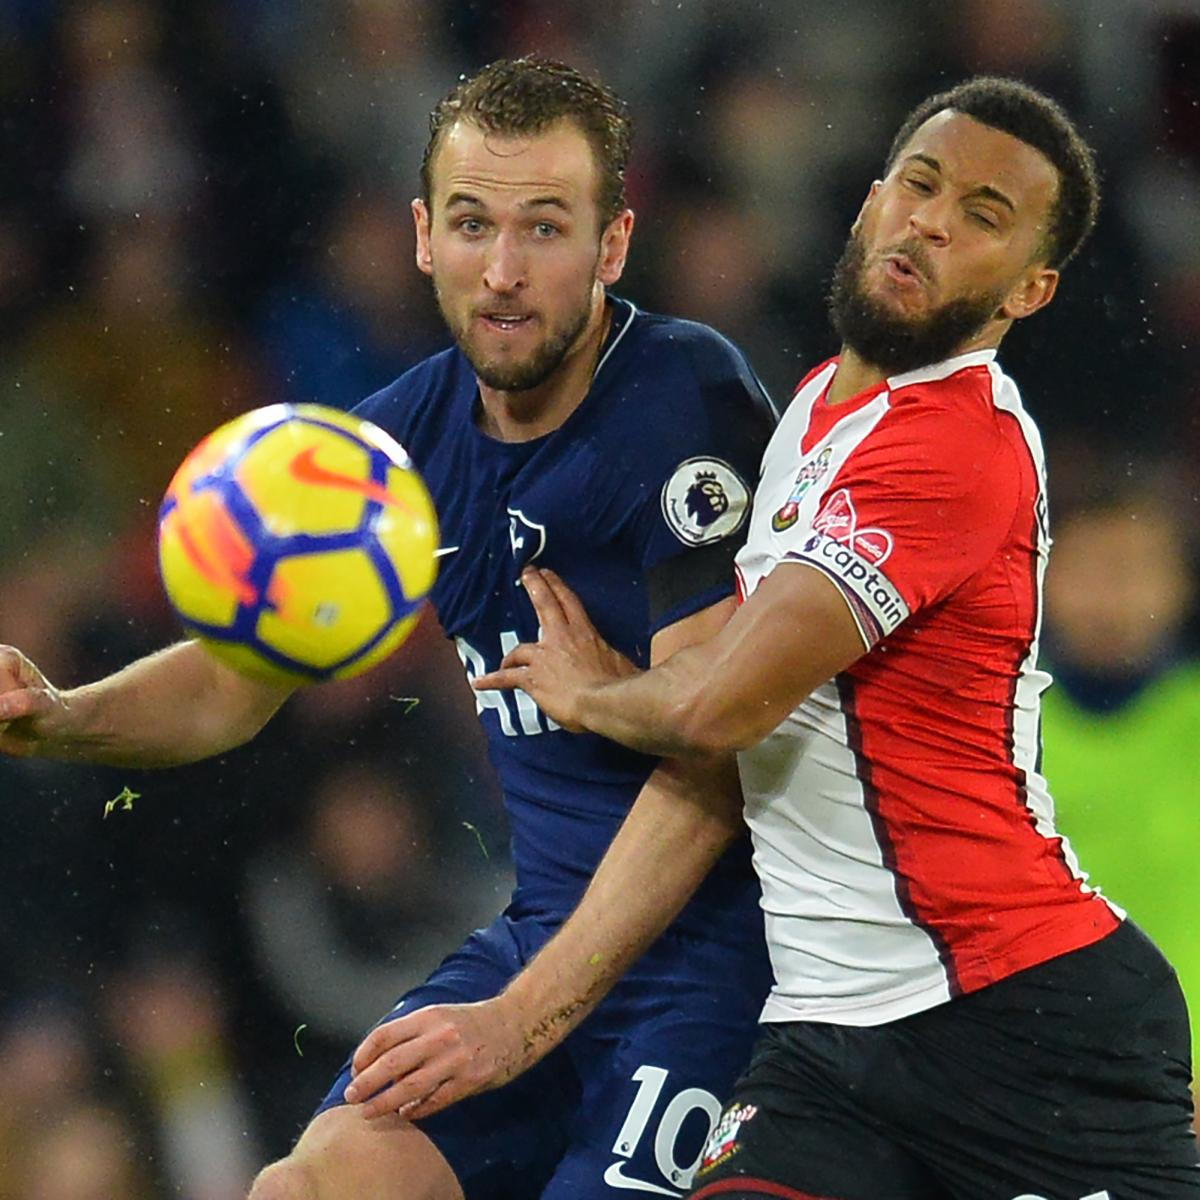 Tottenham 3 Fulham 1 Match Highlights Harry Kane Scores: EPL Table: 2018 Week 24 Standings After Sunday's Premier